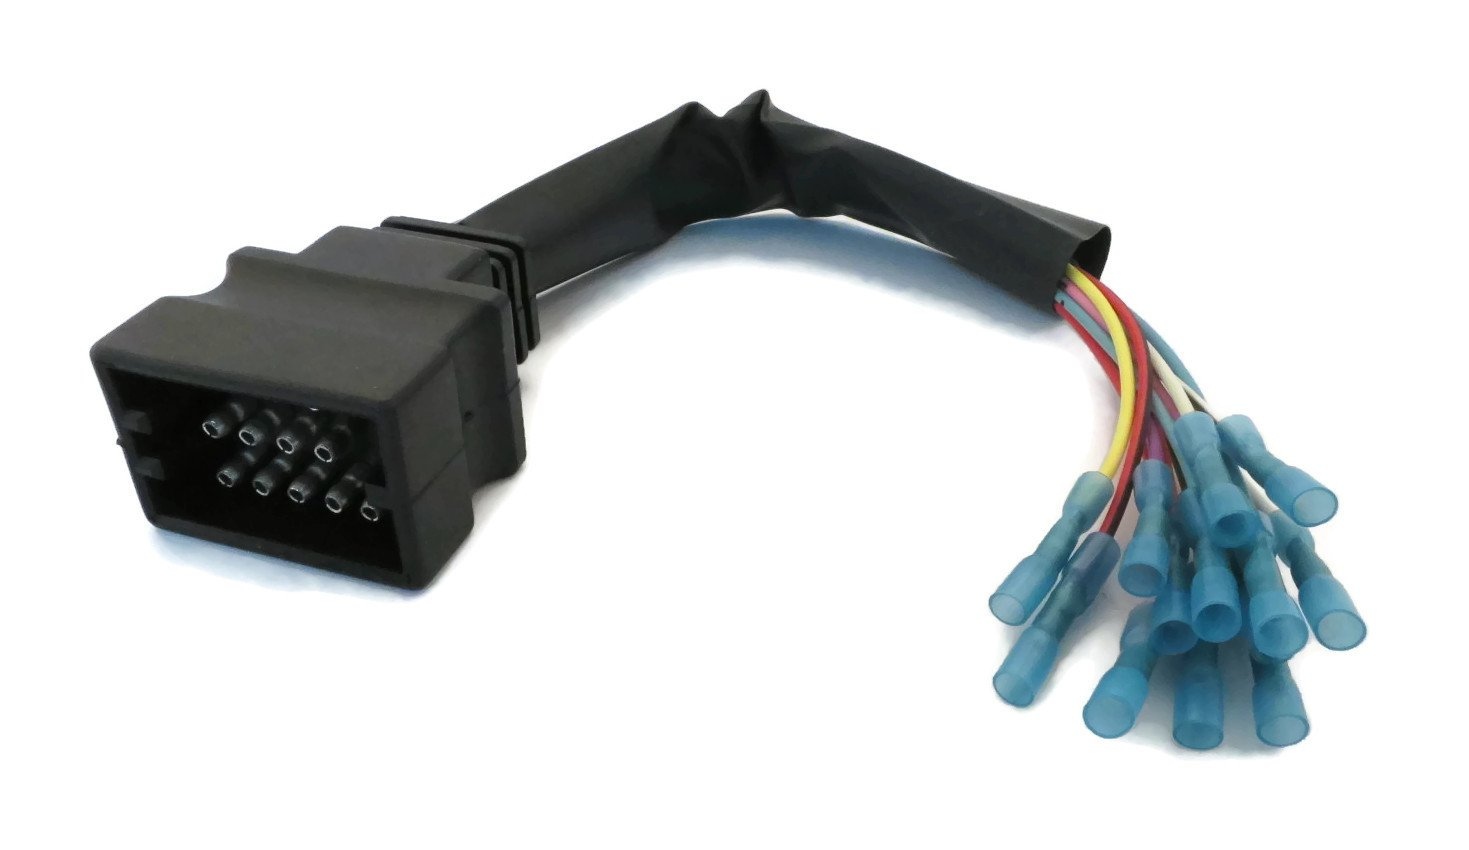 61IwZON%2BxQL._SL1469_ amazon com snow plow wiring harness repair kit (plow side how to repair a wiring harness at arjmand.co